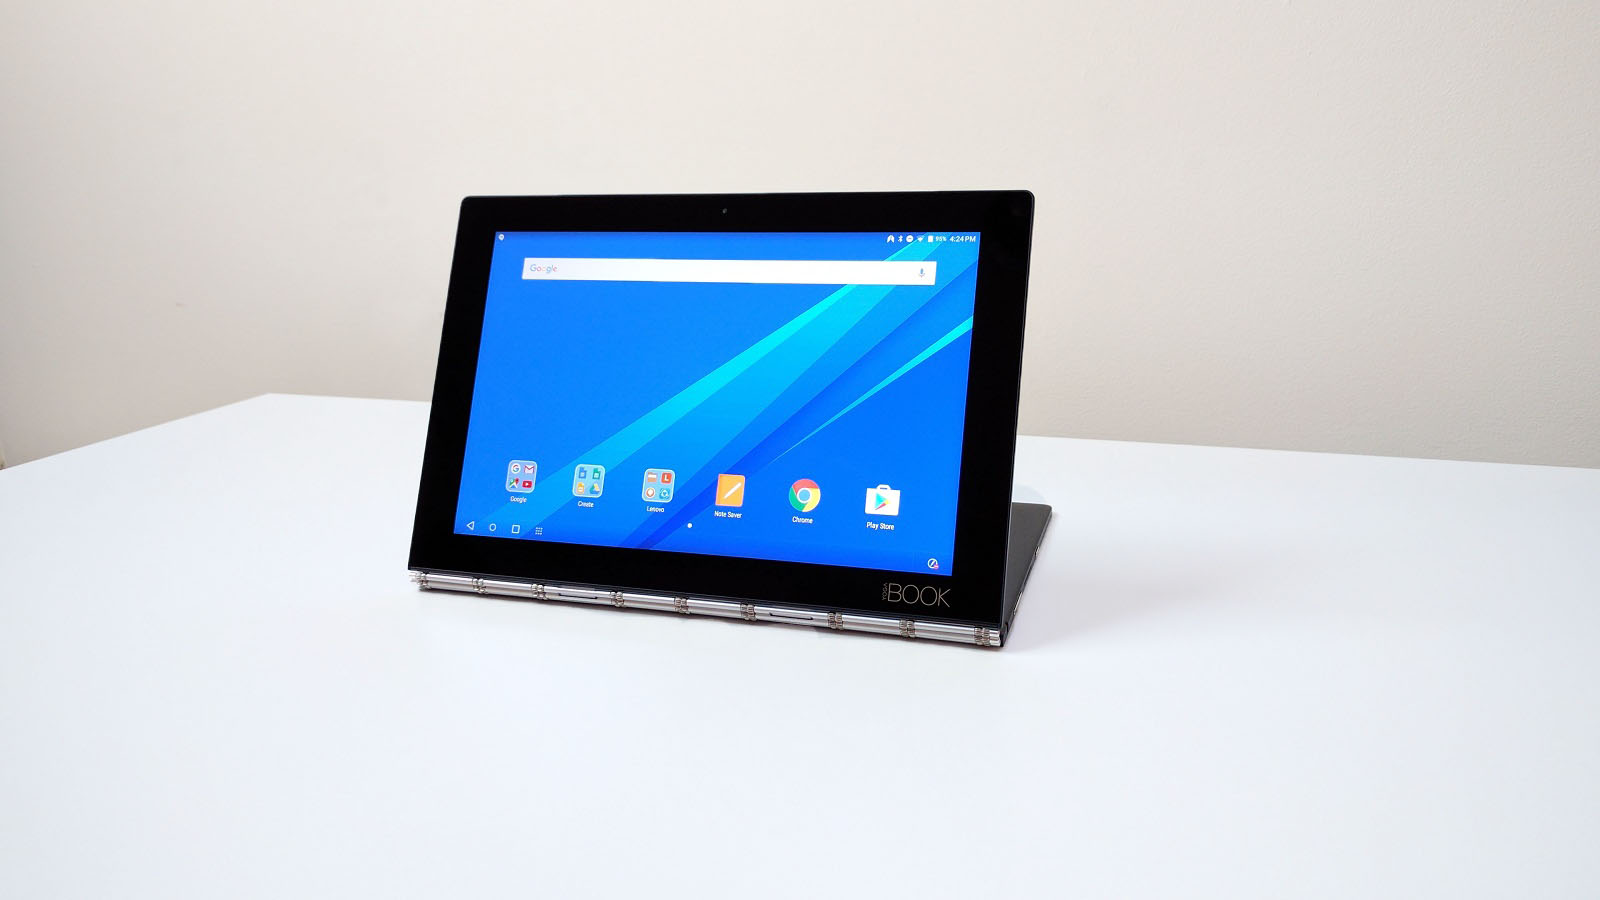 Lenovo Yoga Book Review Most Innovative Android Tablet This Year Talk Android News